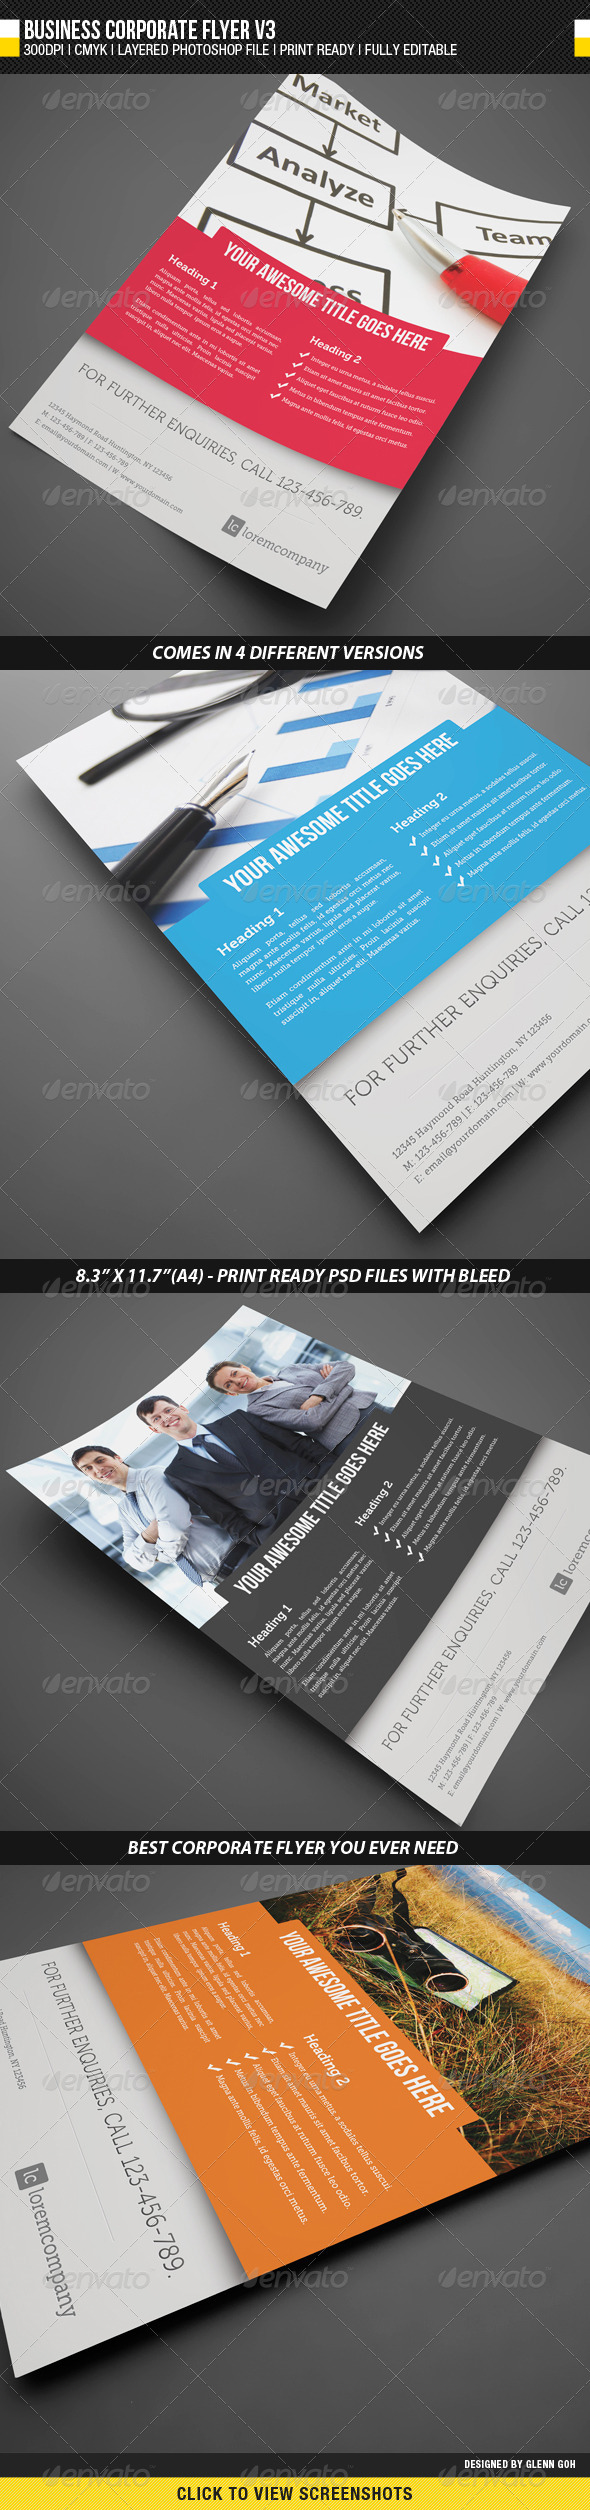 Business Corporate Flyer V3 - Corporate Flyers